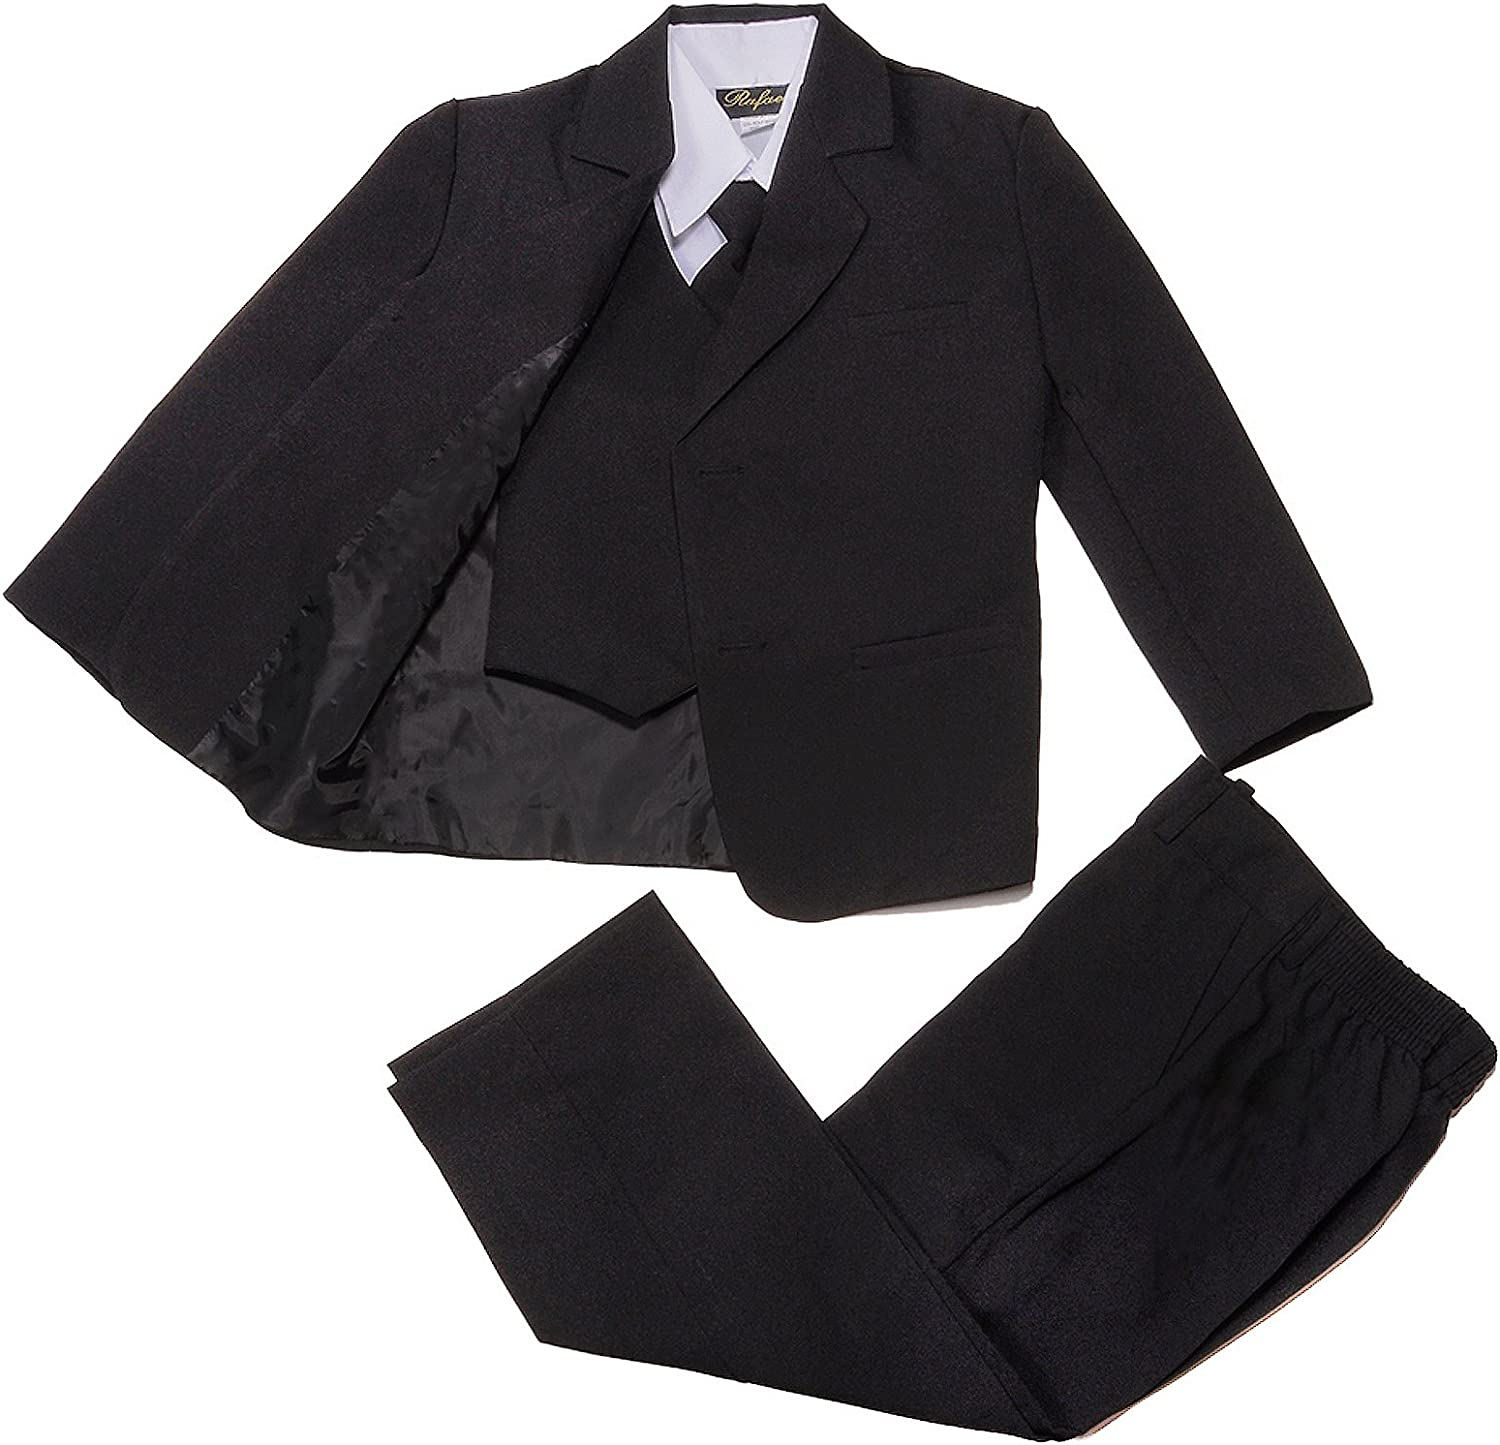 Nancy Spring new work August Classic Toddler Boy Suit in Formal Black Recommendation 2T-20-Blac